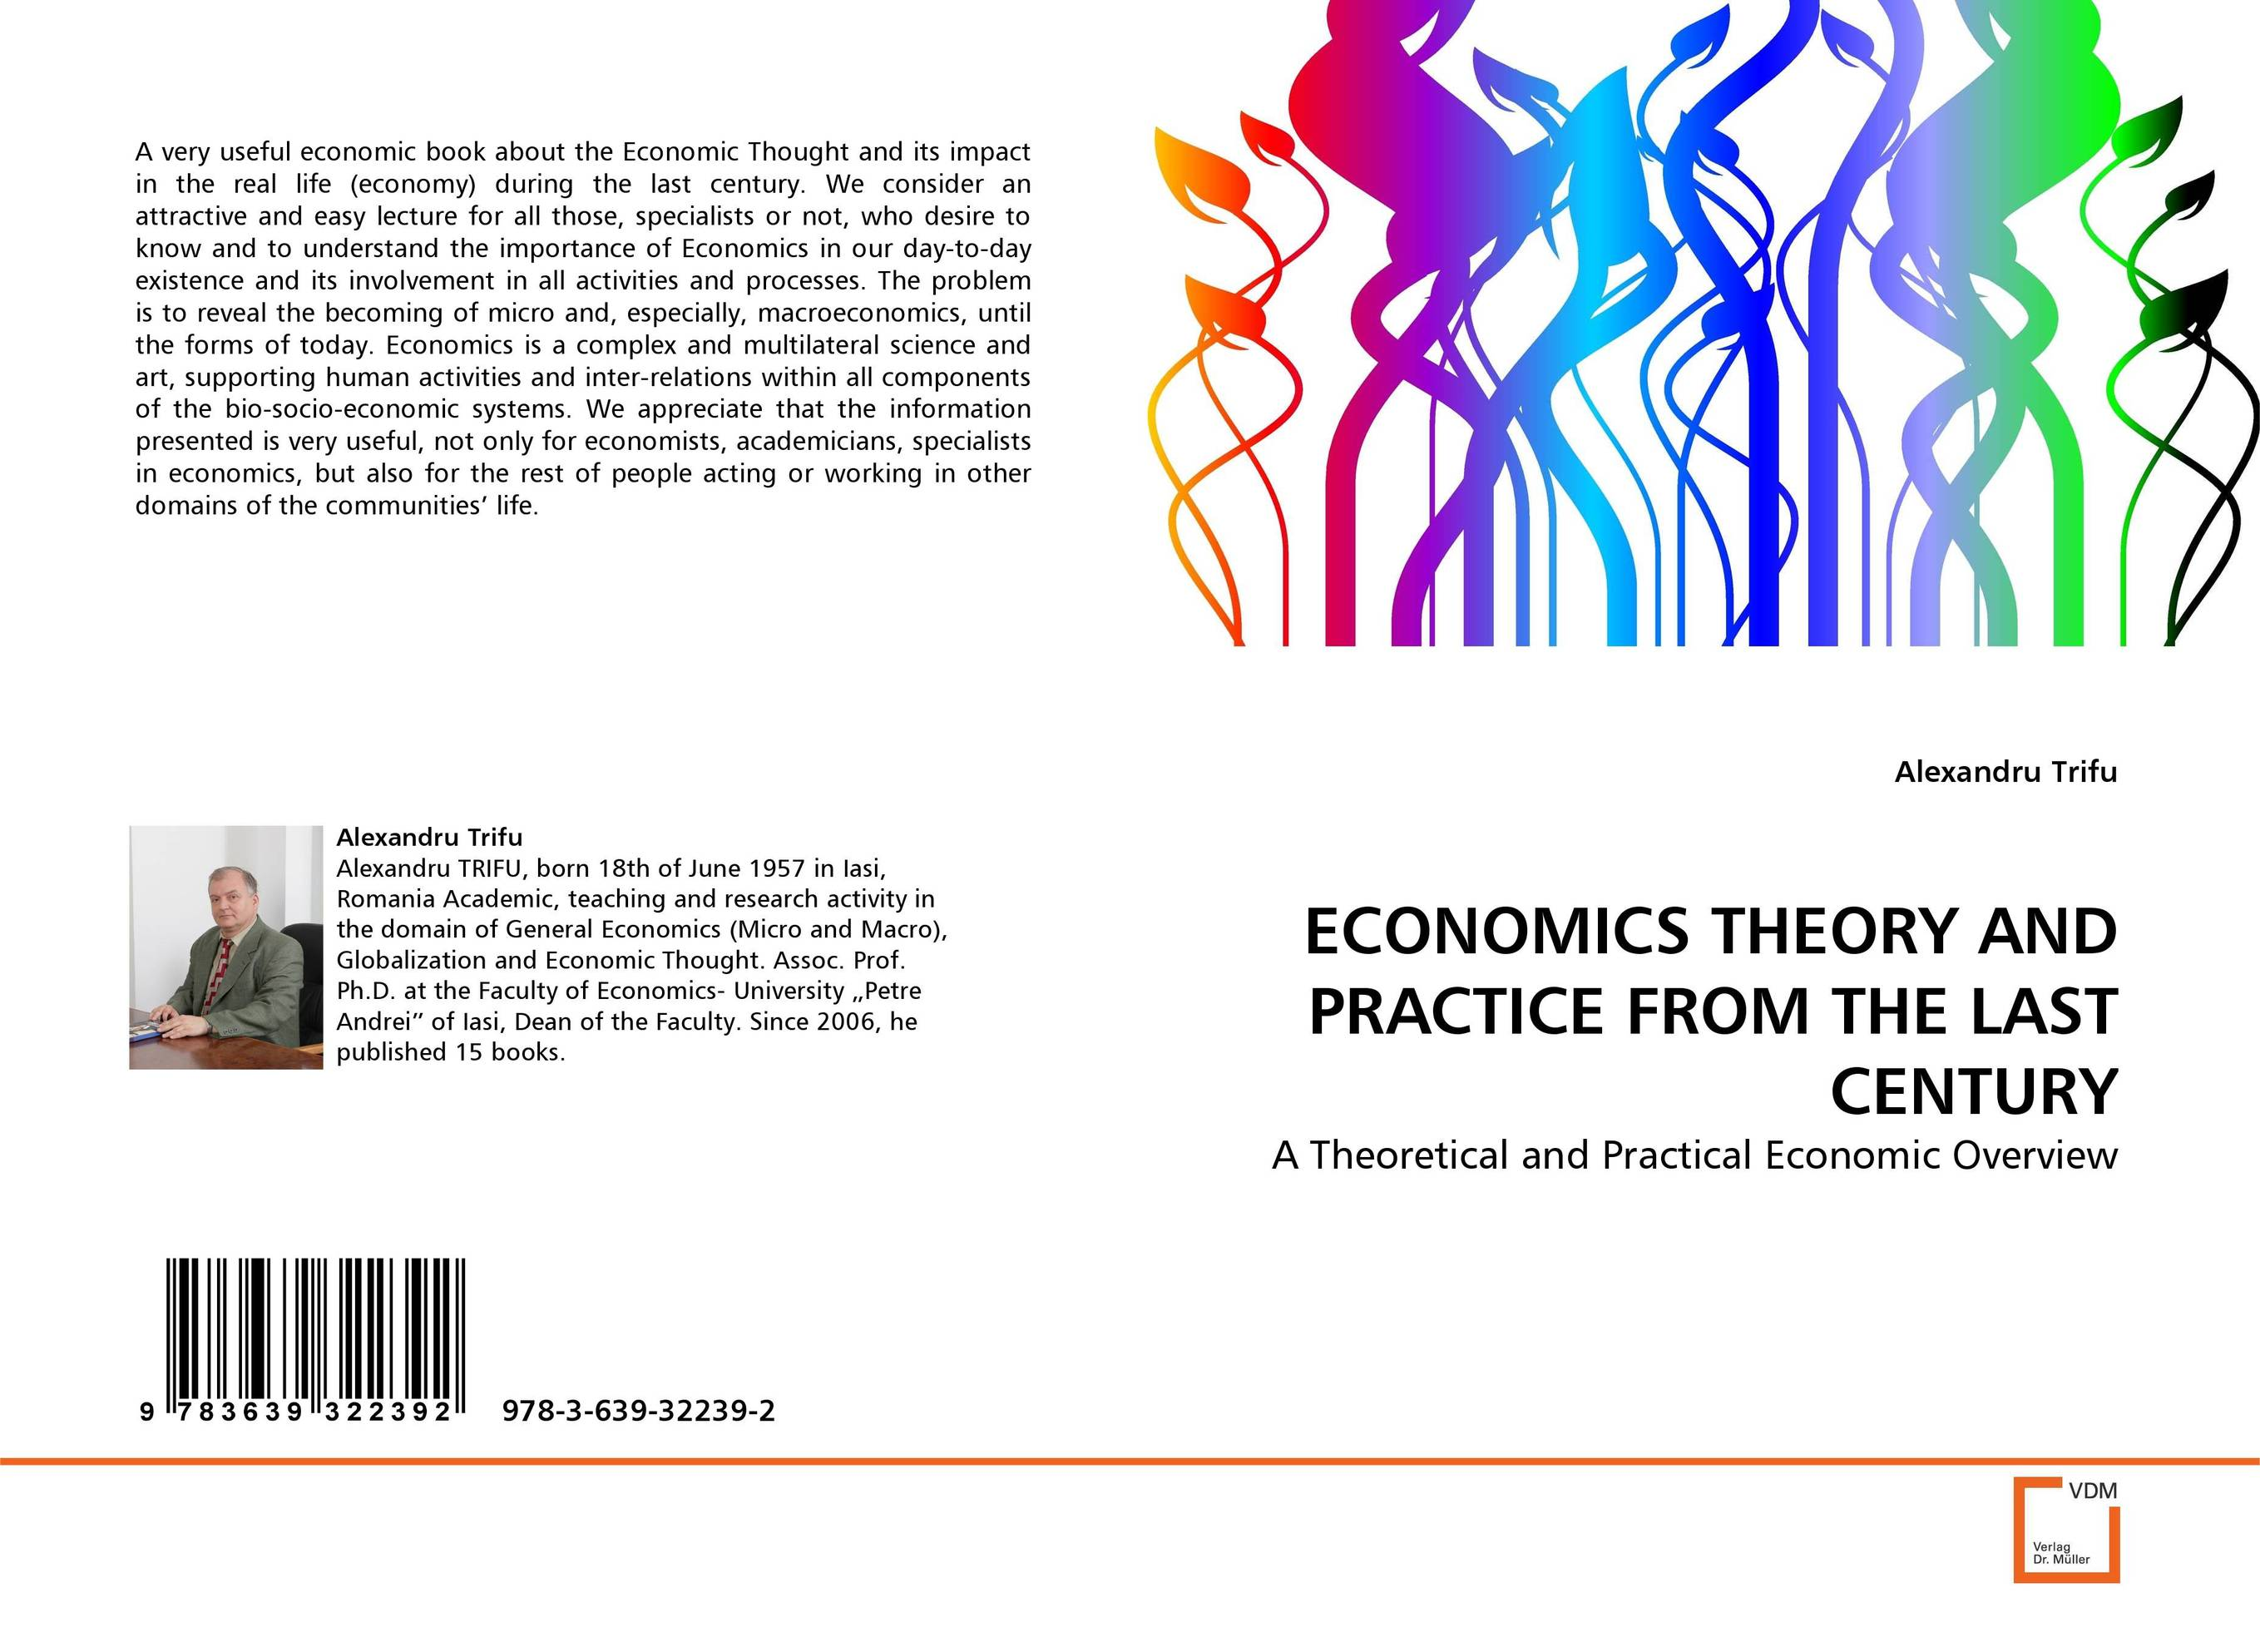 ECONOMICS THEORY AND PRACTICE FROM THE LAST CENTURY palestinian economics its limitation and the prospect of success